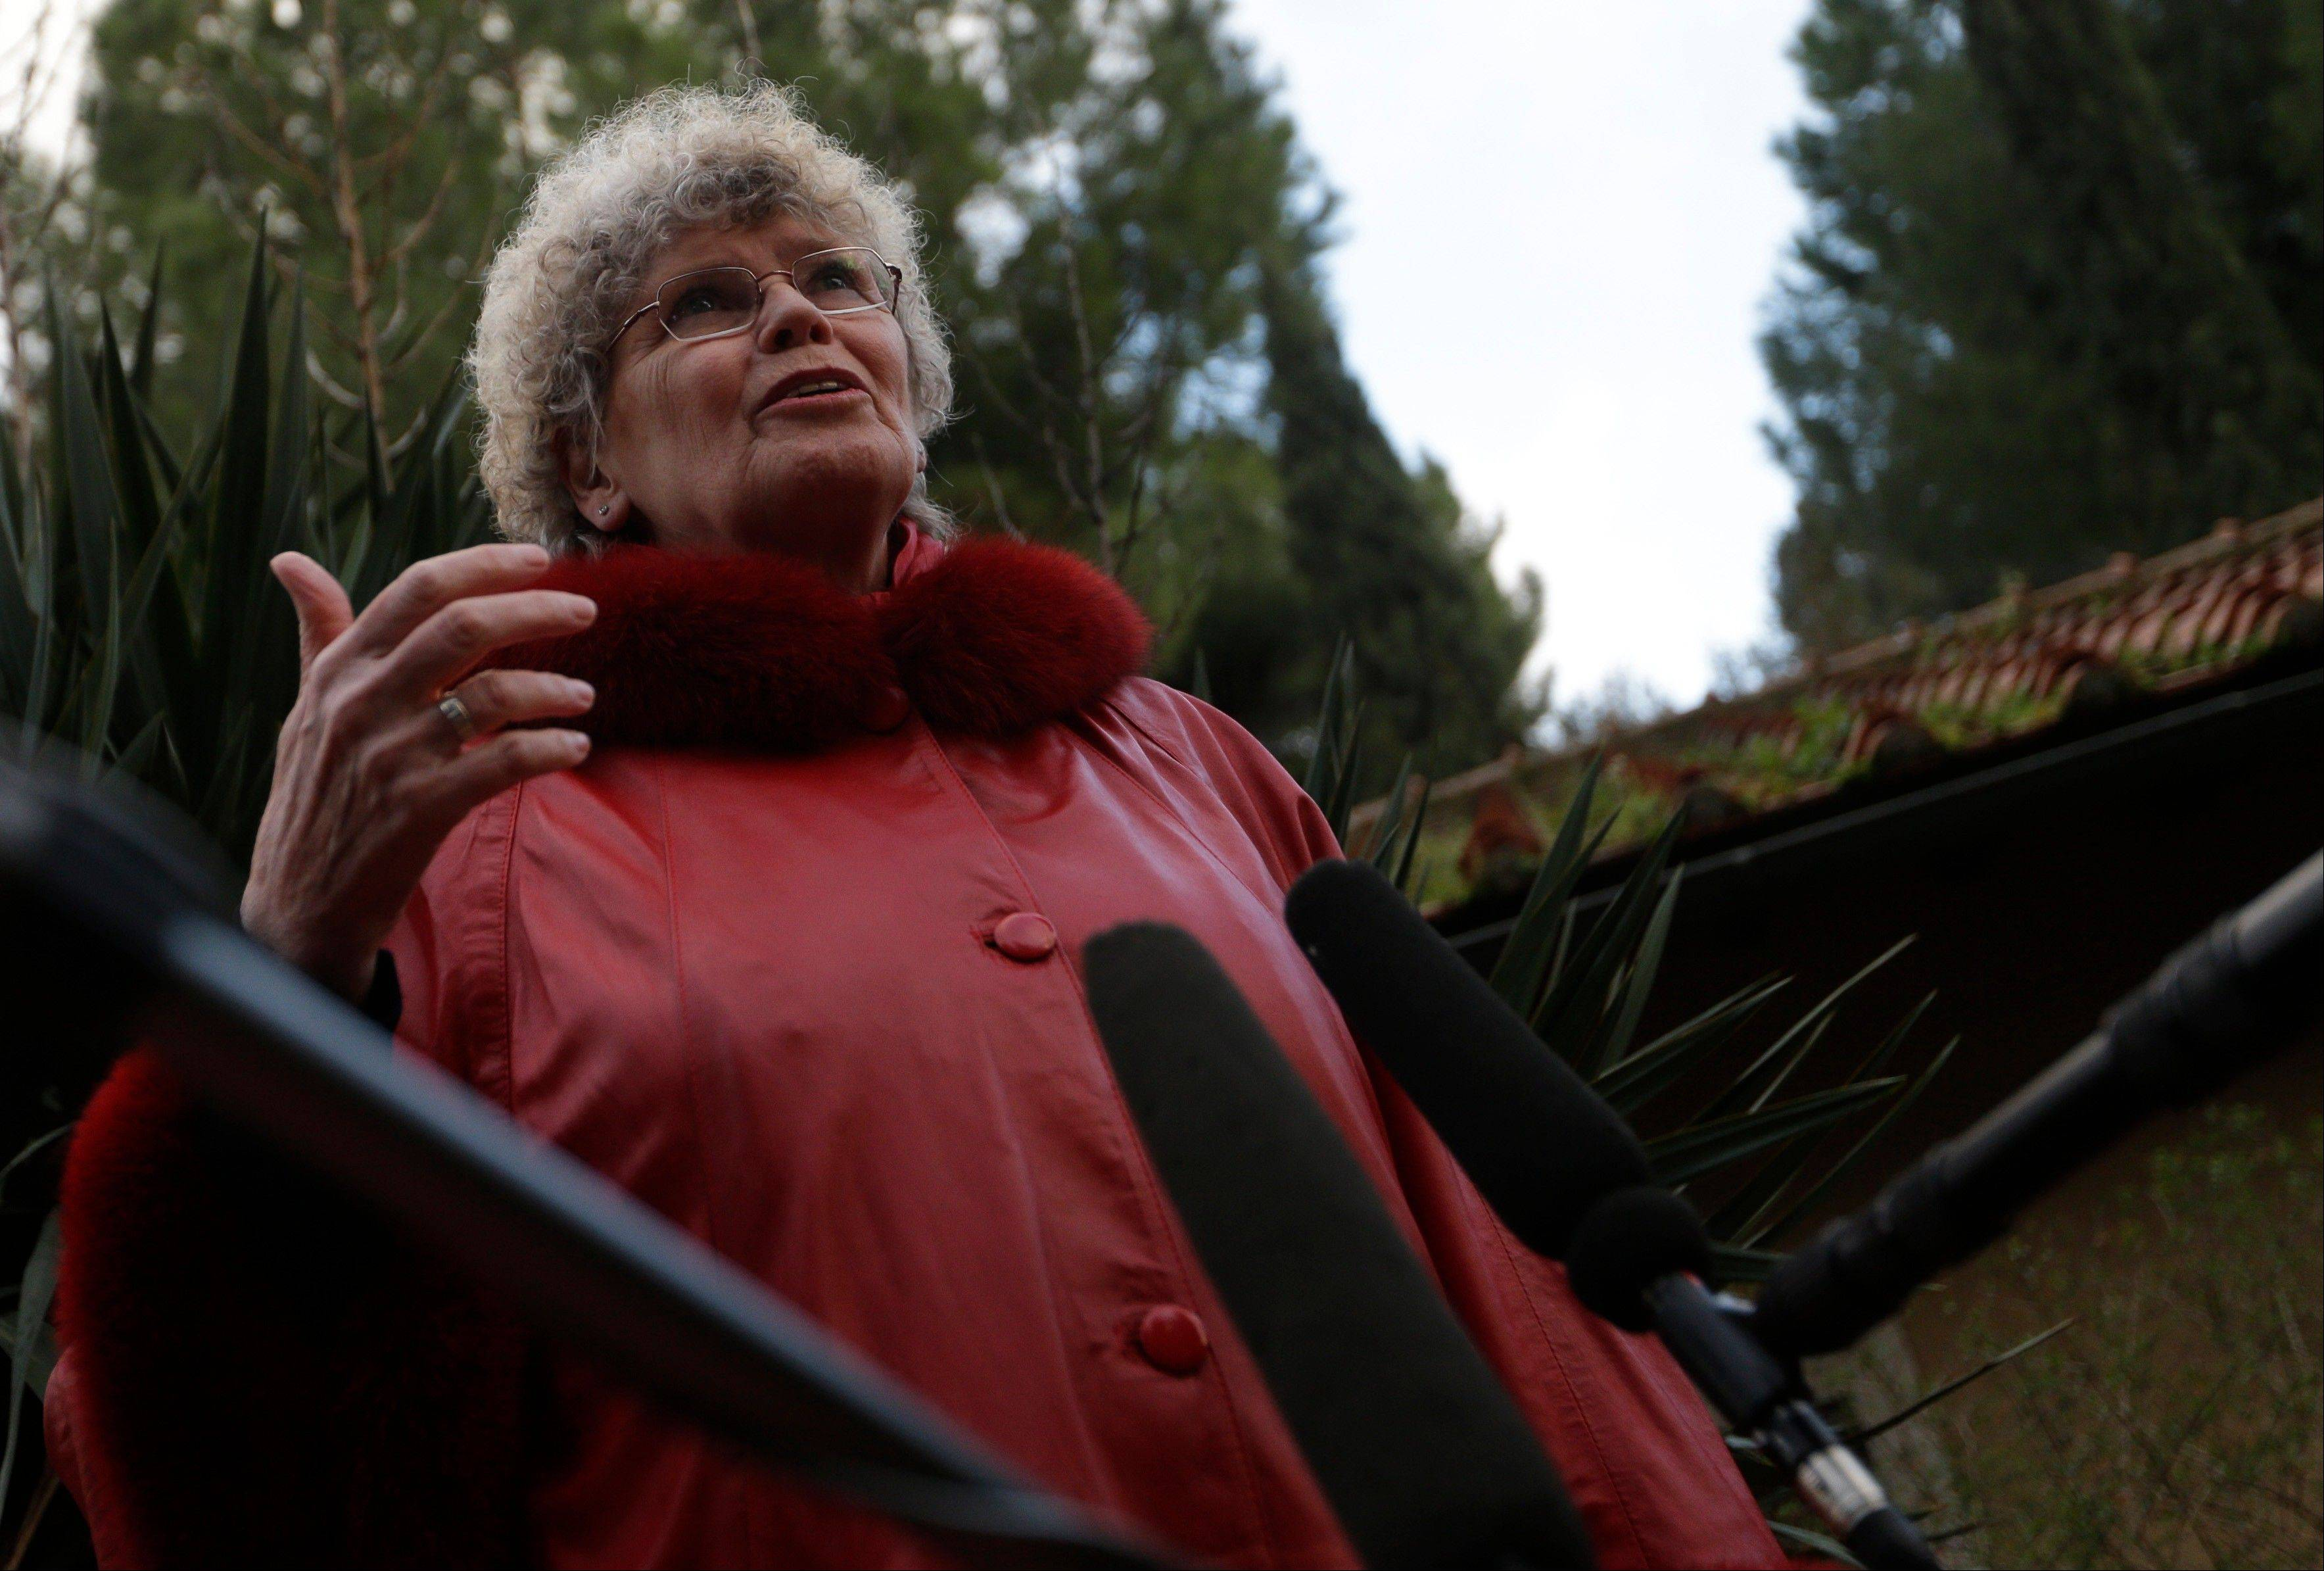 Martha Heizer, president of the International Movement �We are Church�, meets reporters in Rome. Advocacy groups from around the world have descended on Rome to try to publicize their causes while media attention on the Vatican is high.